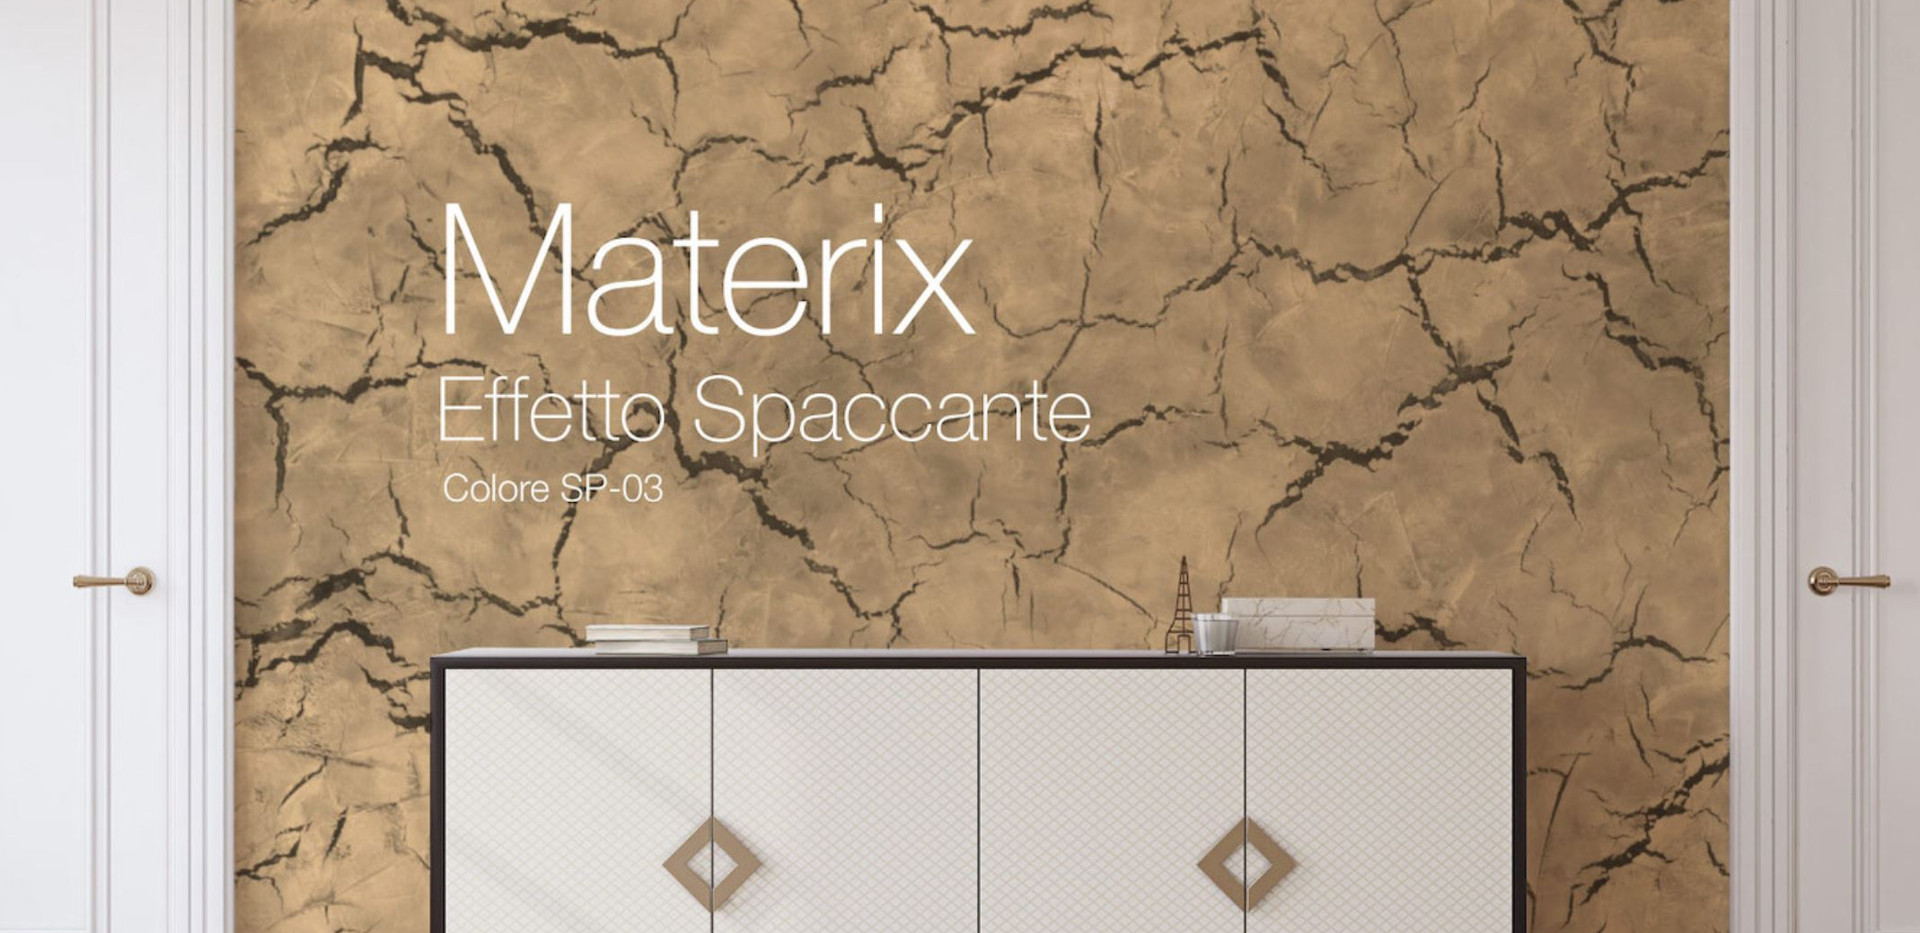 Materix Spaccante